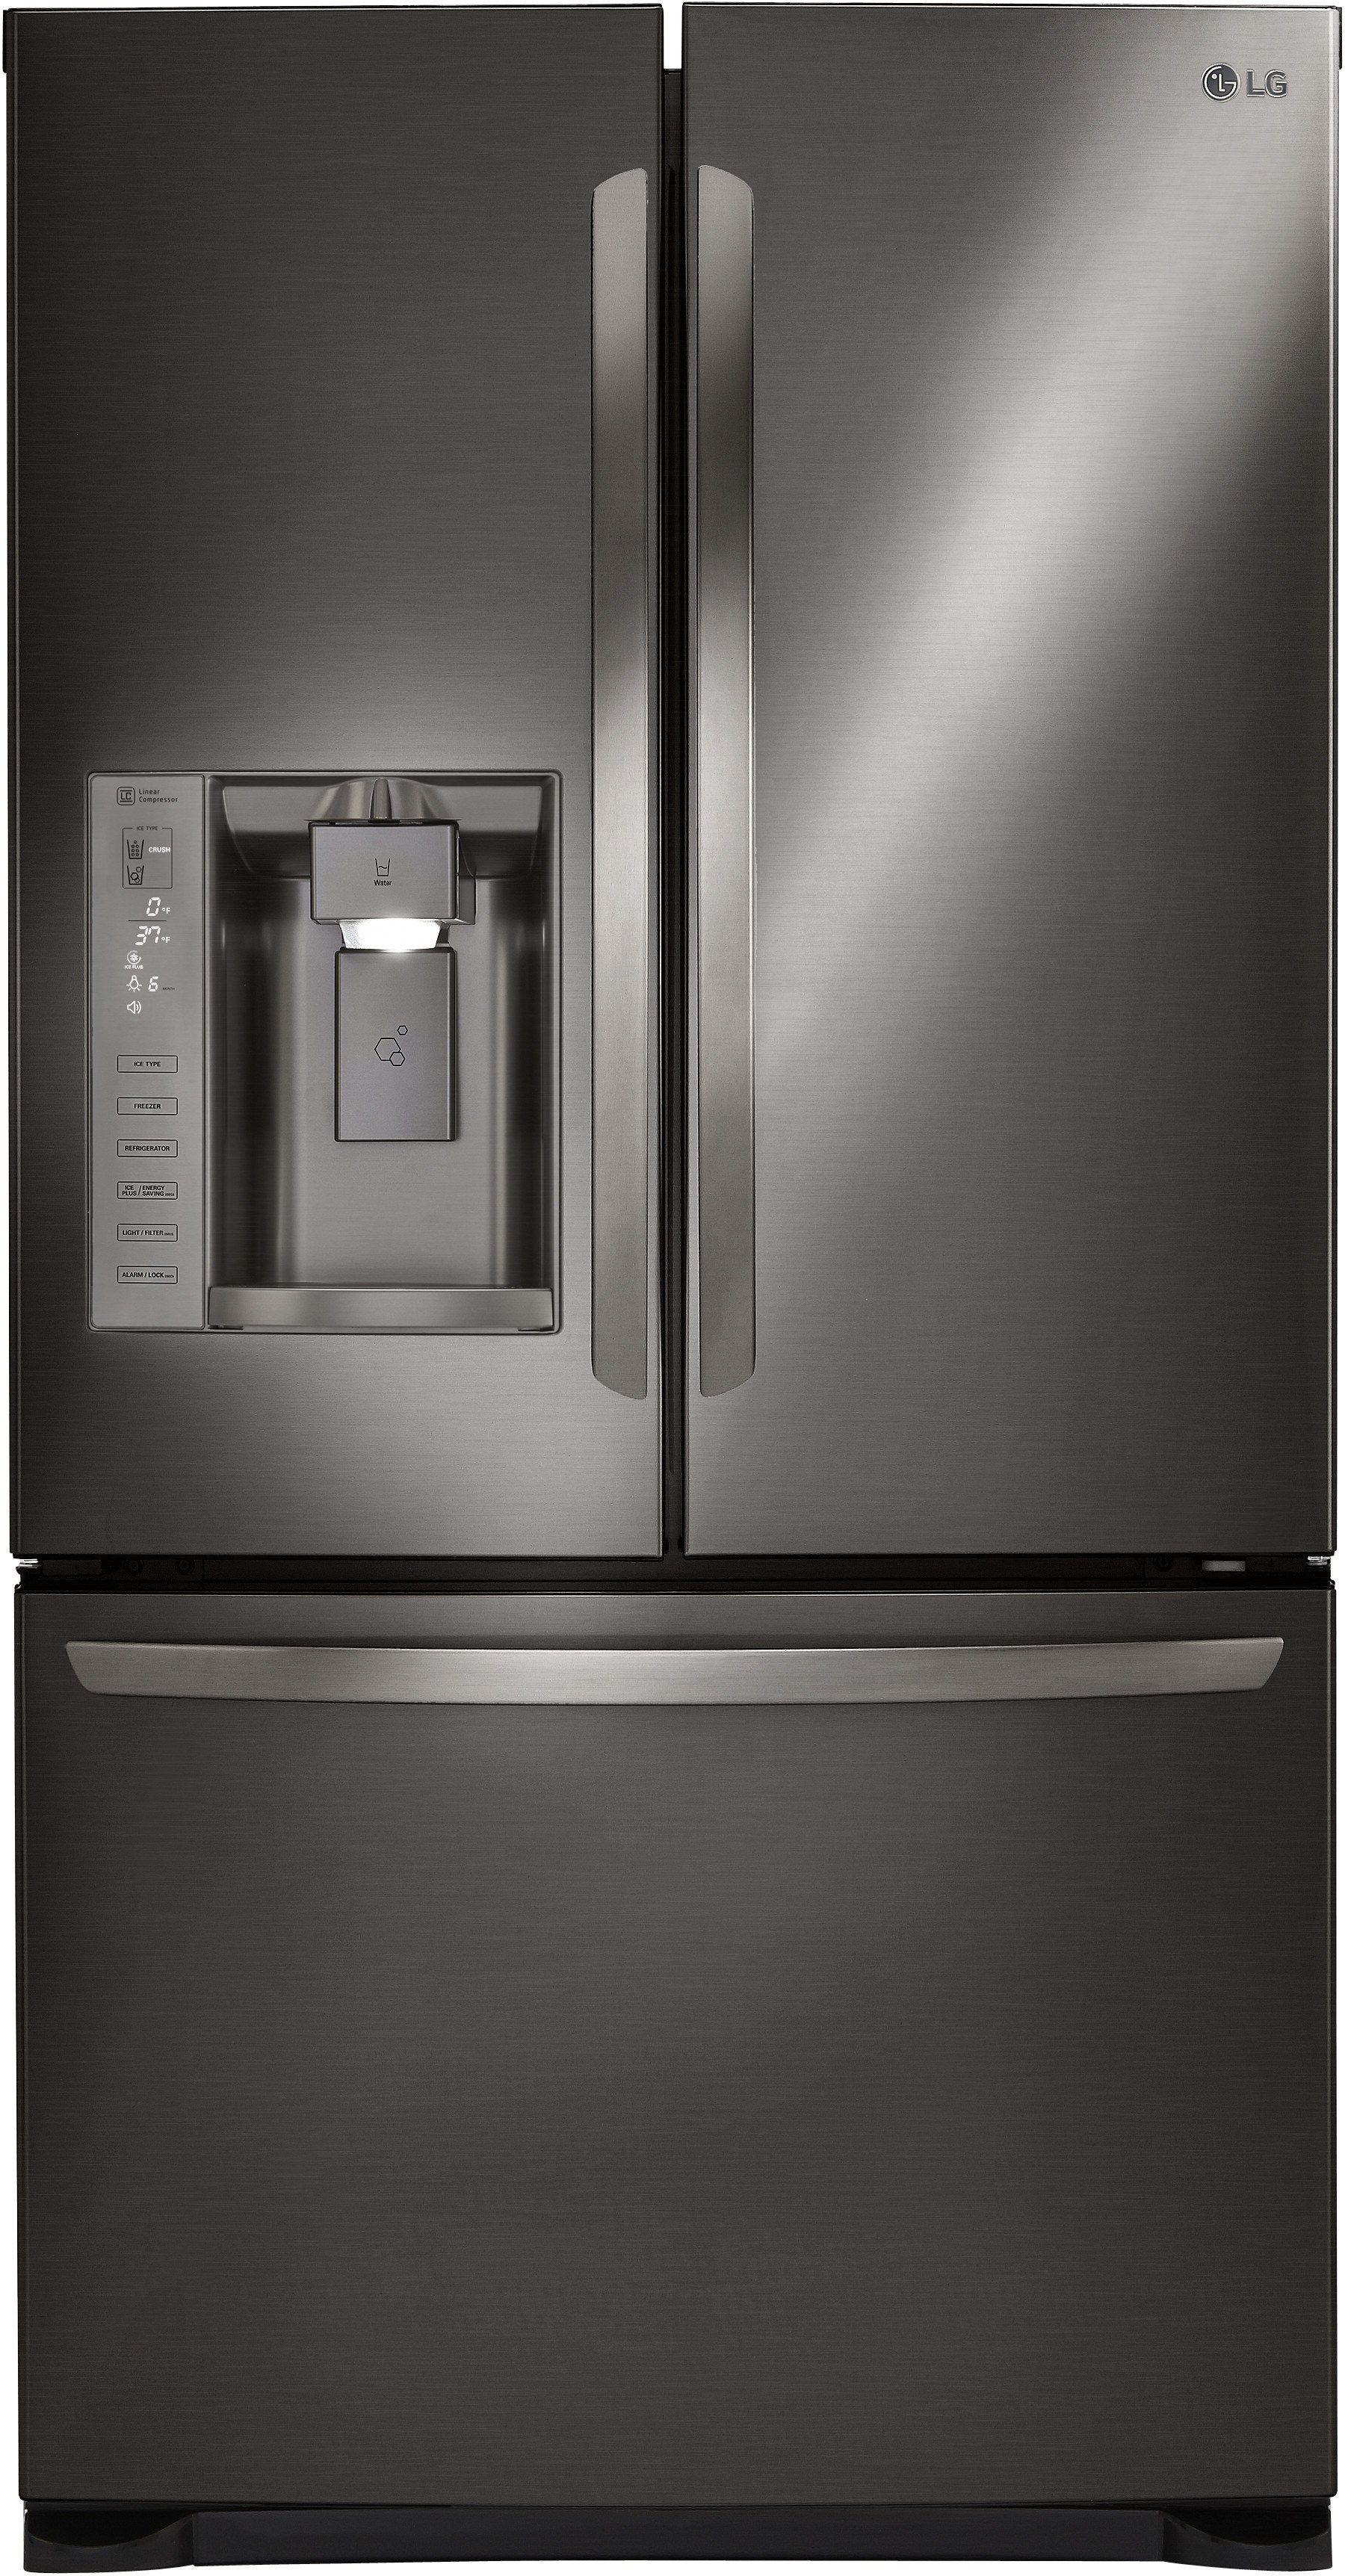 Lg Lfxs24626d 36 Inch French Door Refrigerator With Tall